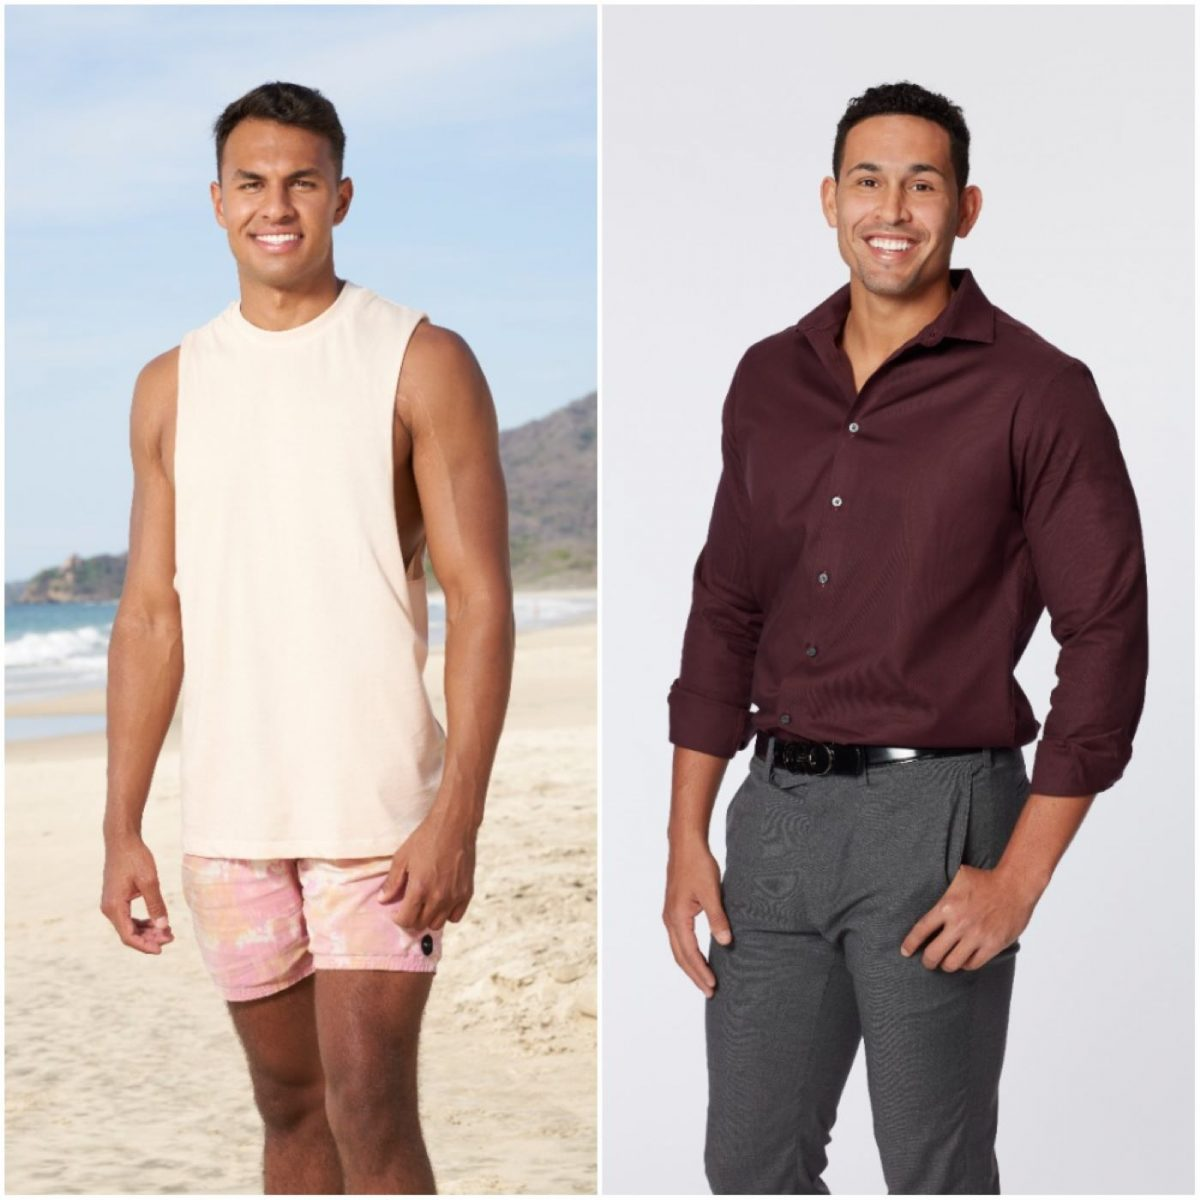 'Bachelor in Paradise' stars Aaron Clancy and Thomas Jacobs